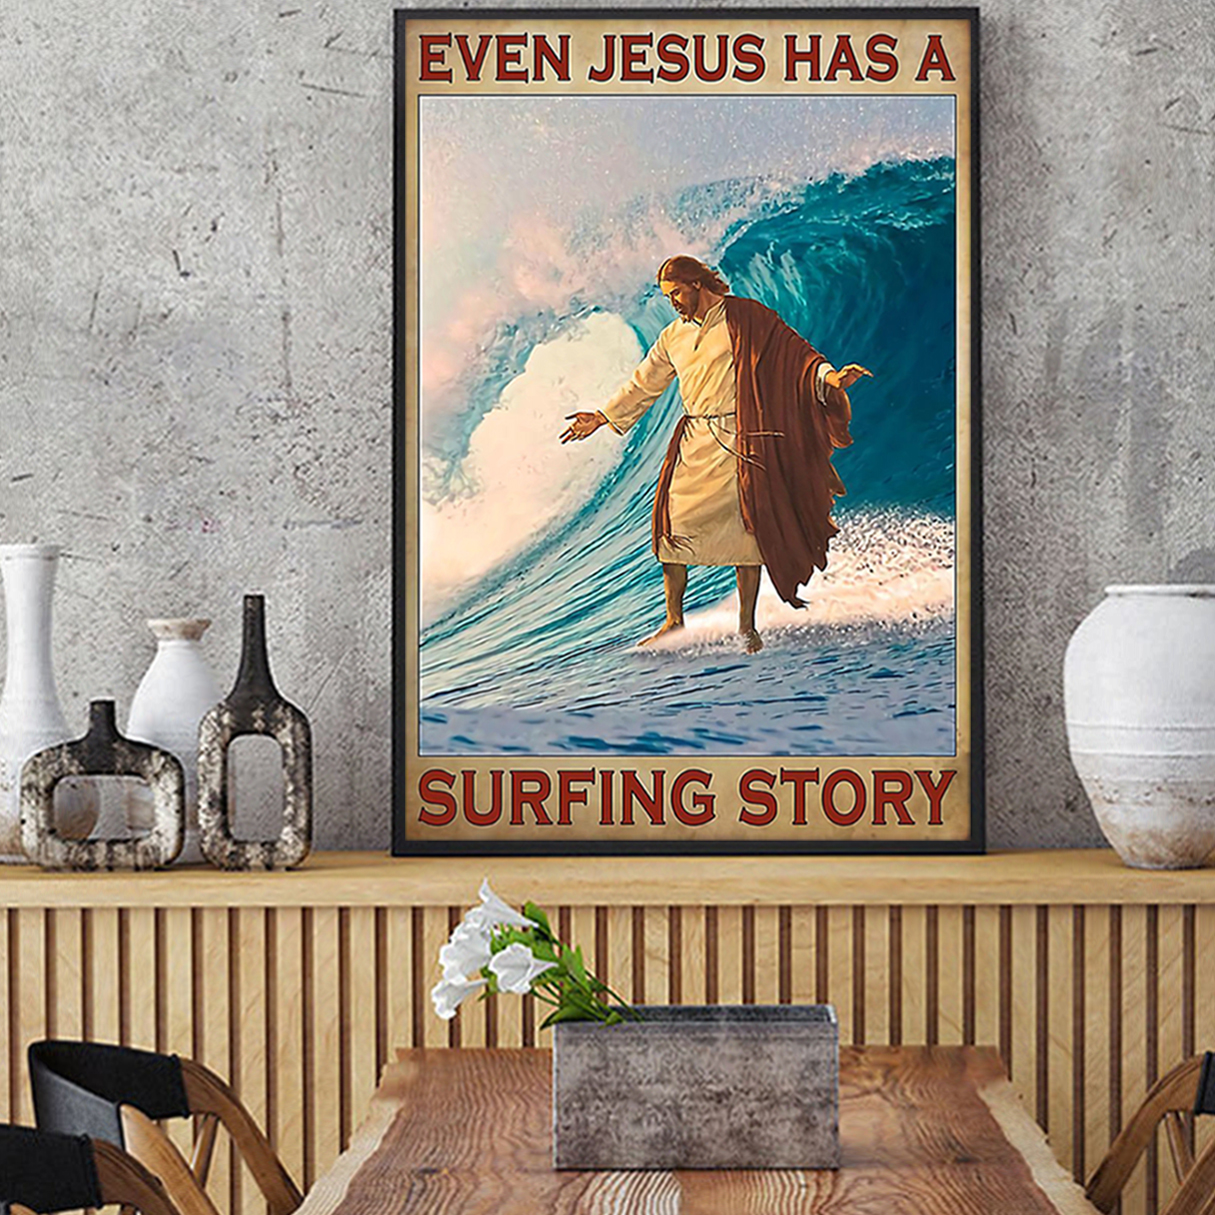 Even Jesus has a surfing story poster A1